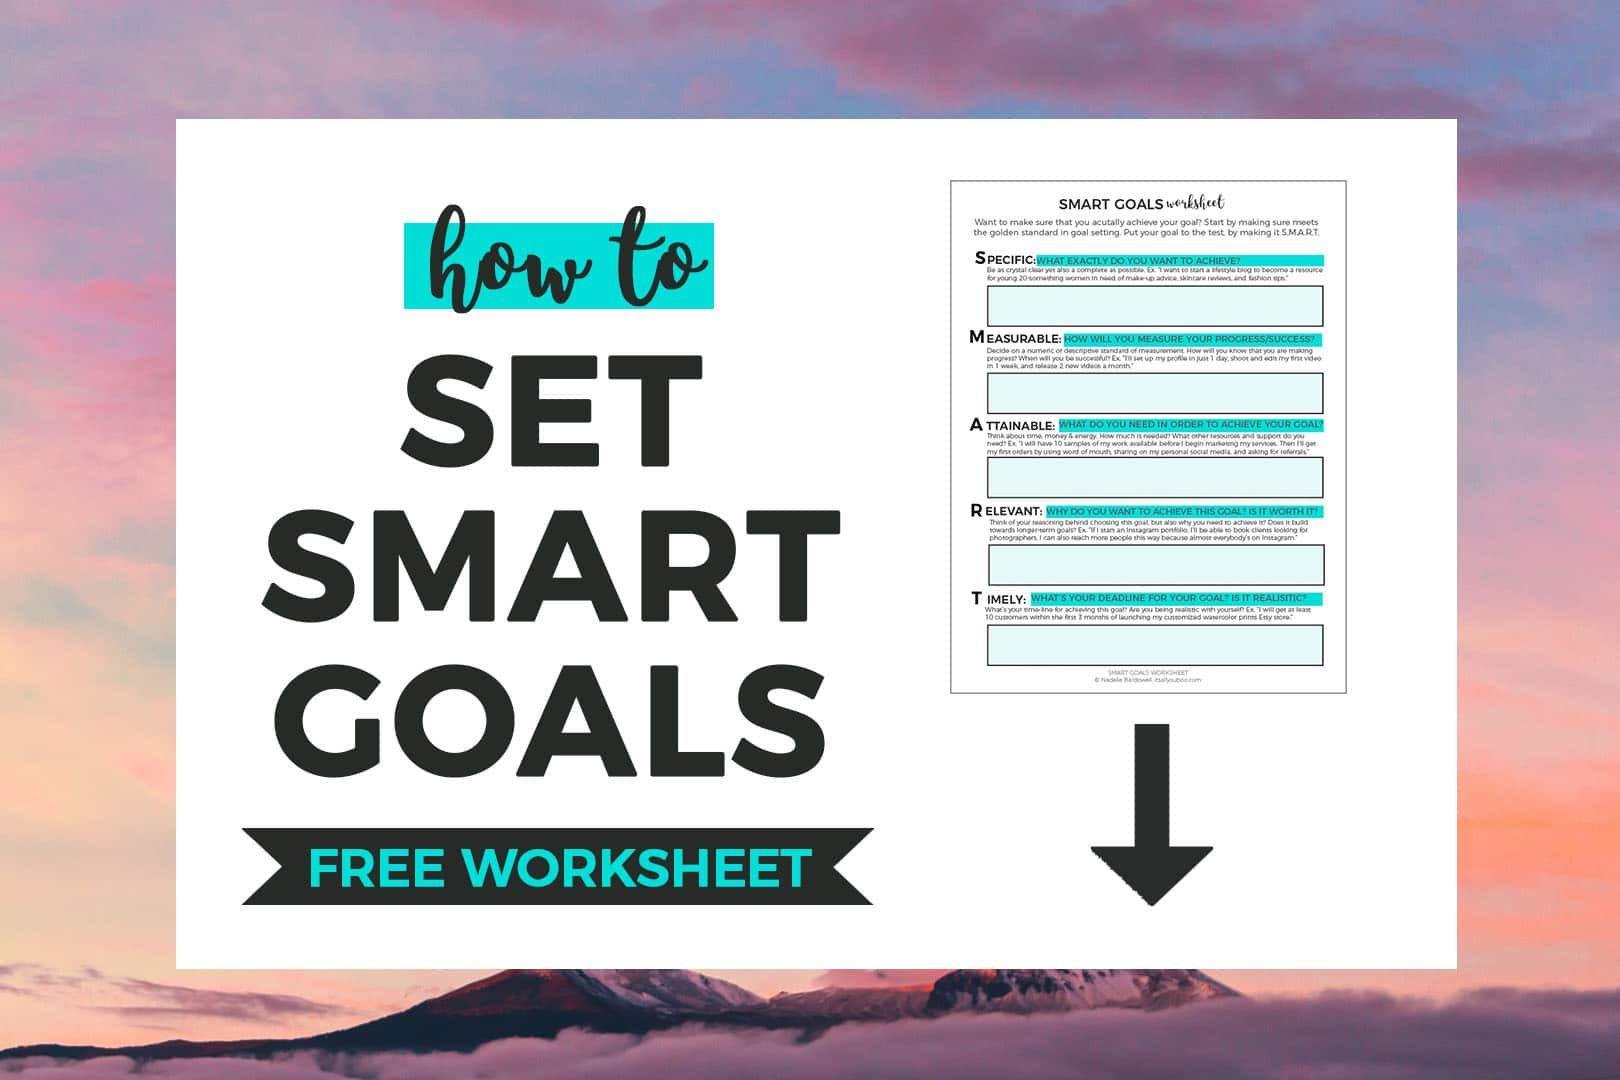 SMART Goals FREE Worksheet